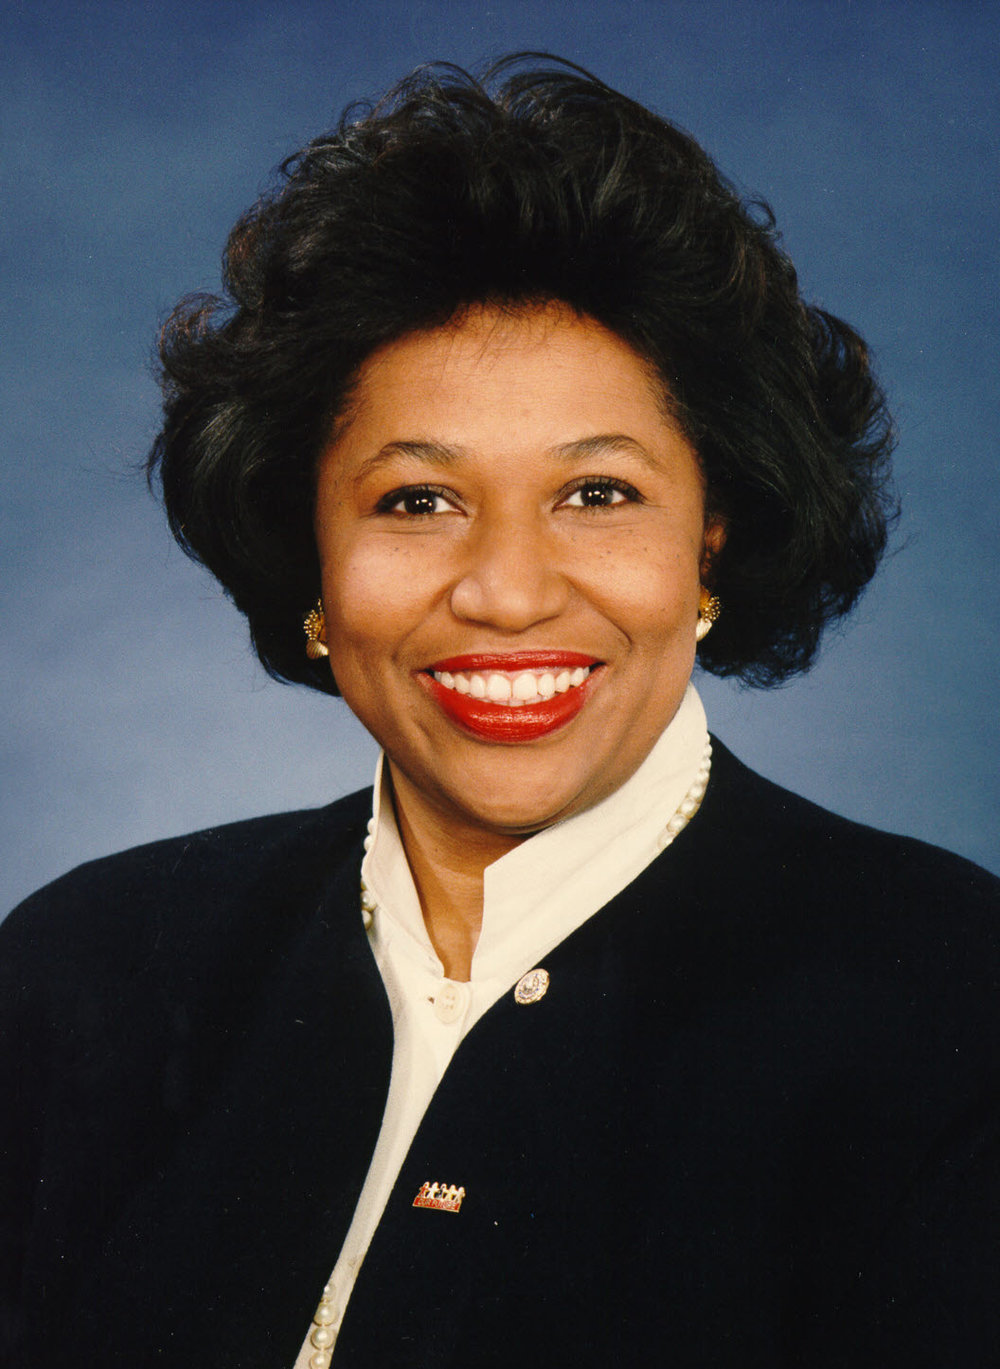 Carol Moseley Braun - First female African-American Senator, and the first woman to defeat an incumbent senator